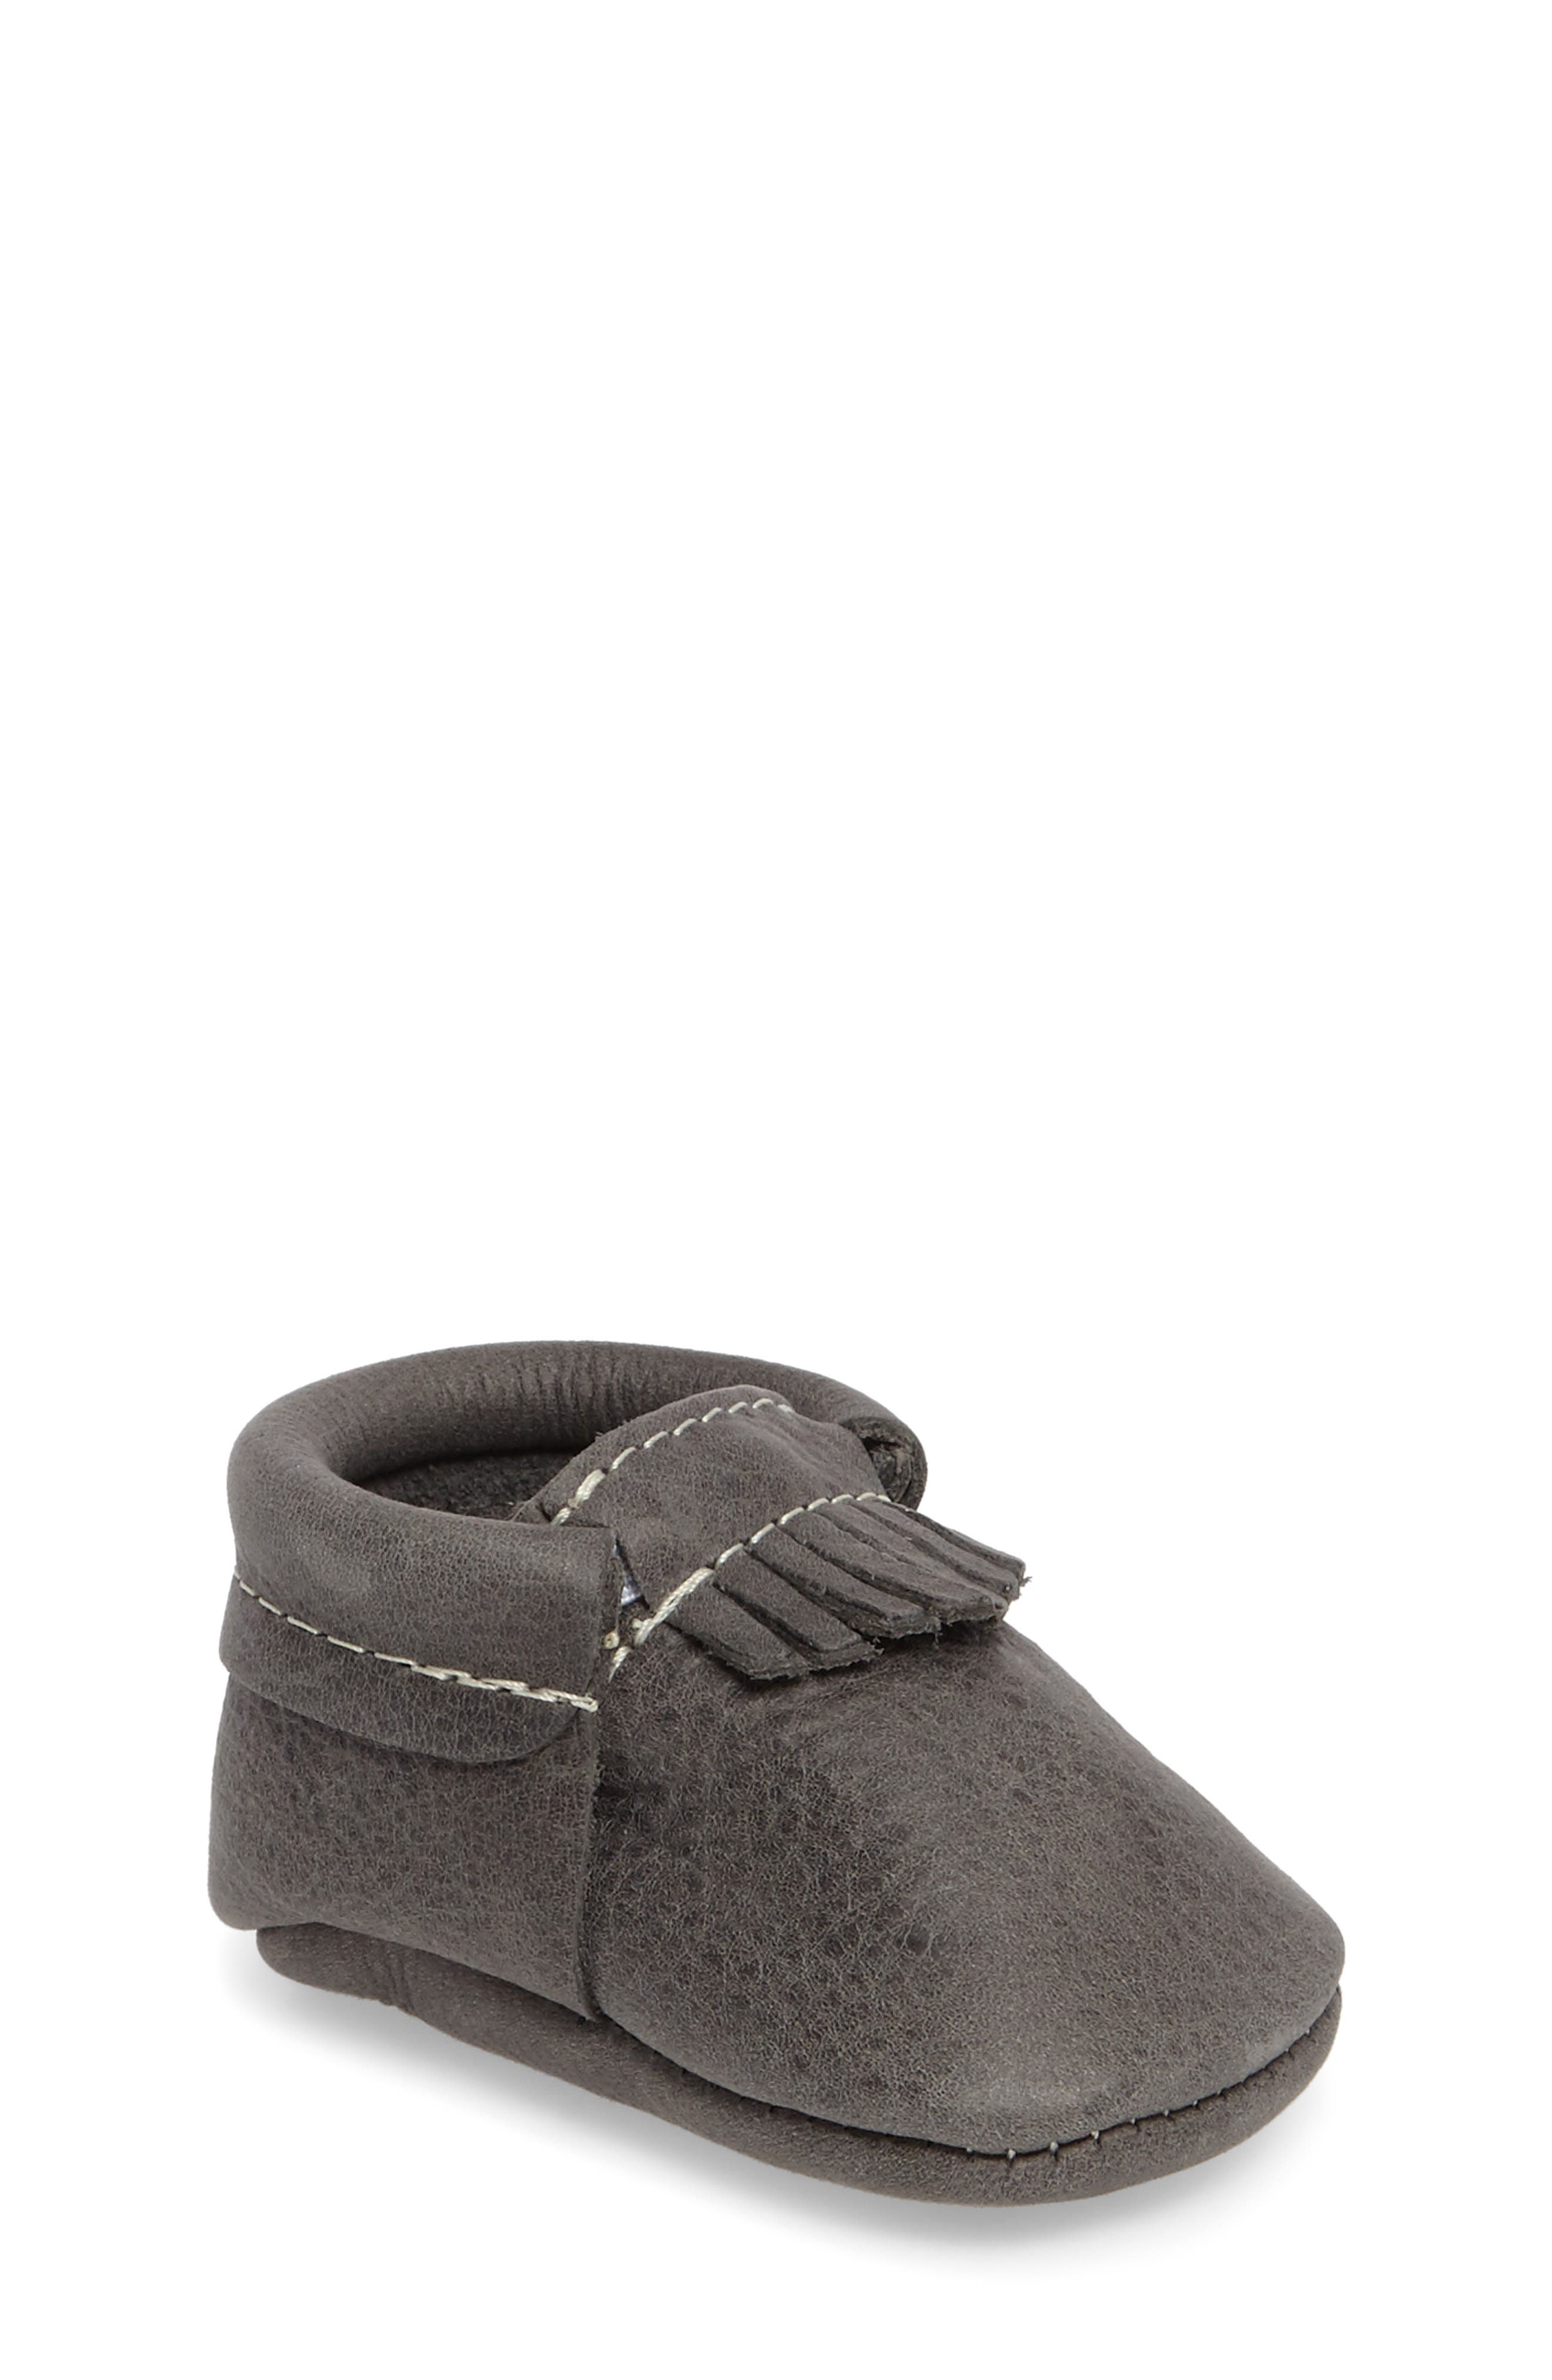 City Moccasin,                         Main,                         color, 020